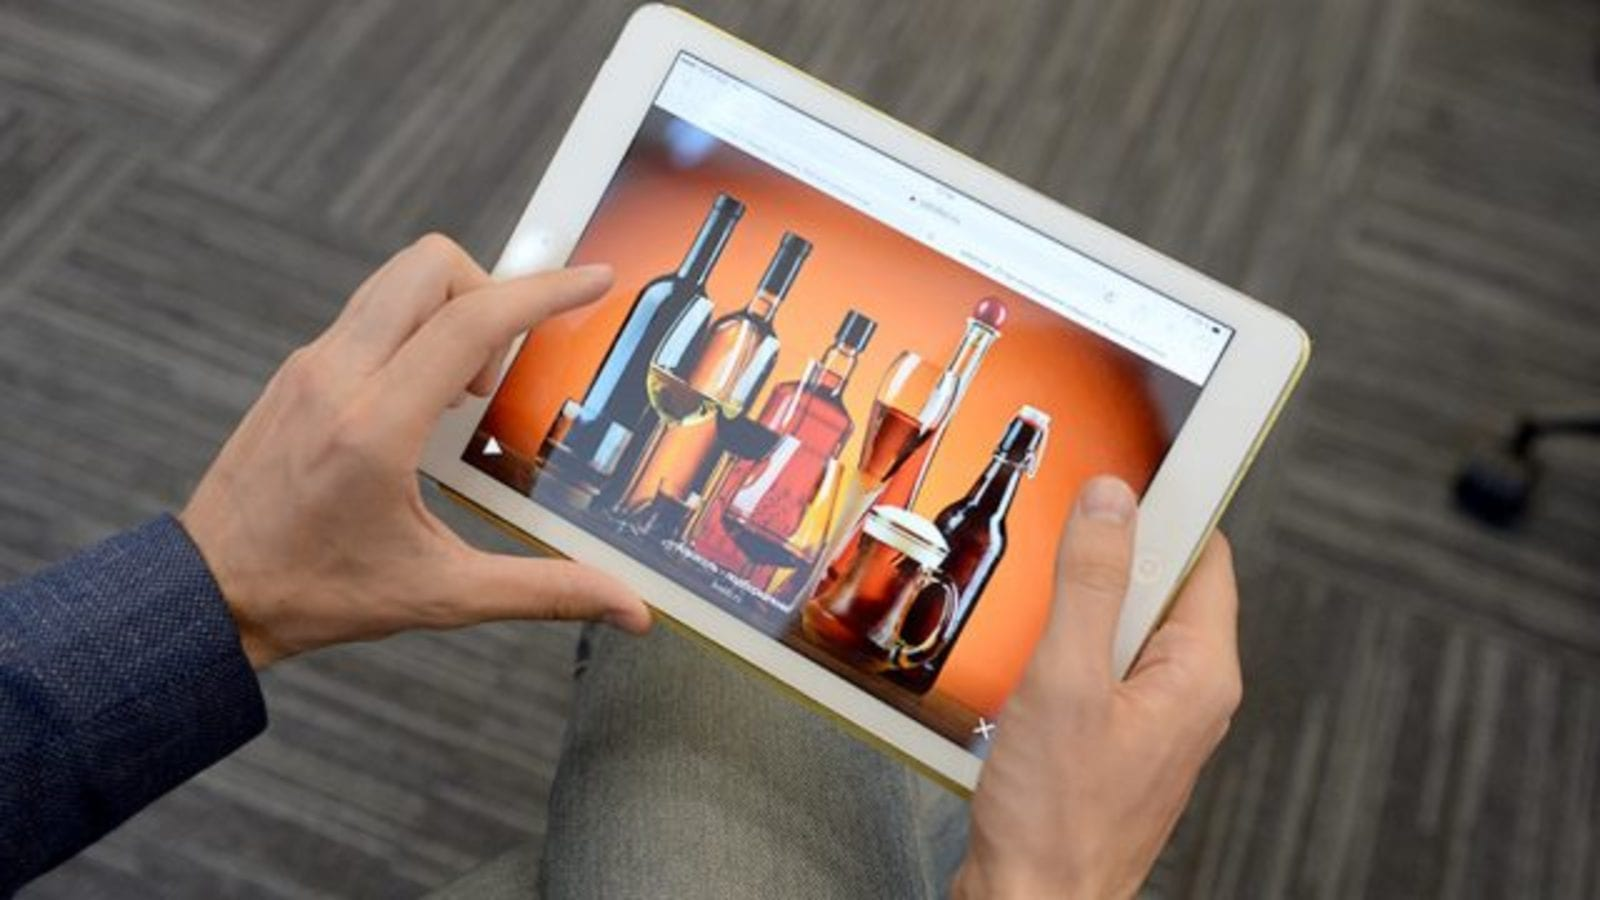 Moët Hennessy, Campari partner to build a European ecommerce platform for wines and spirits